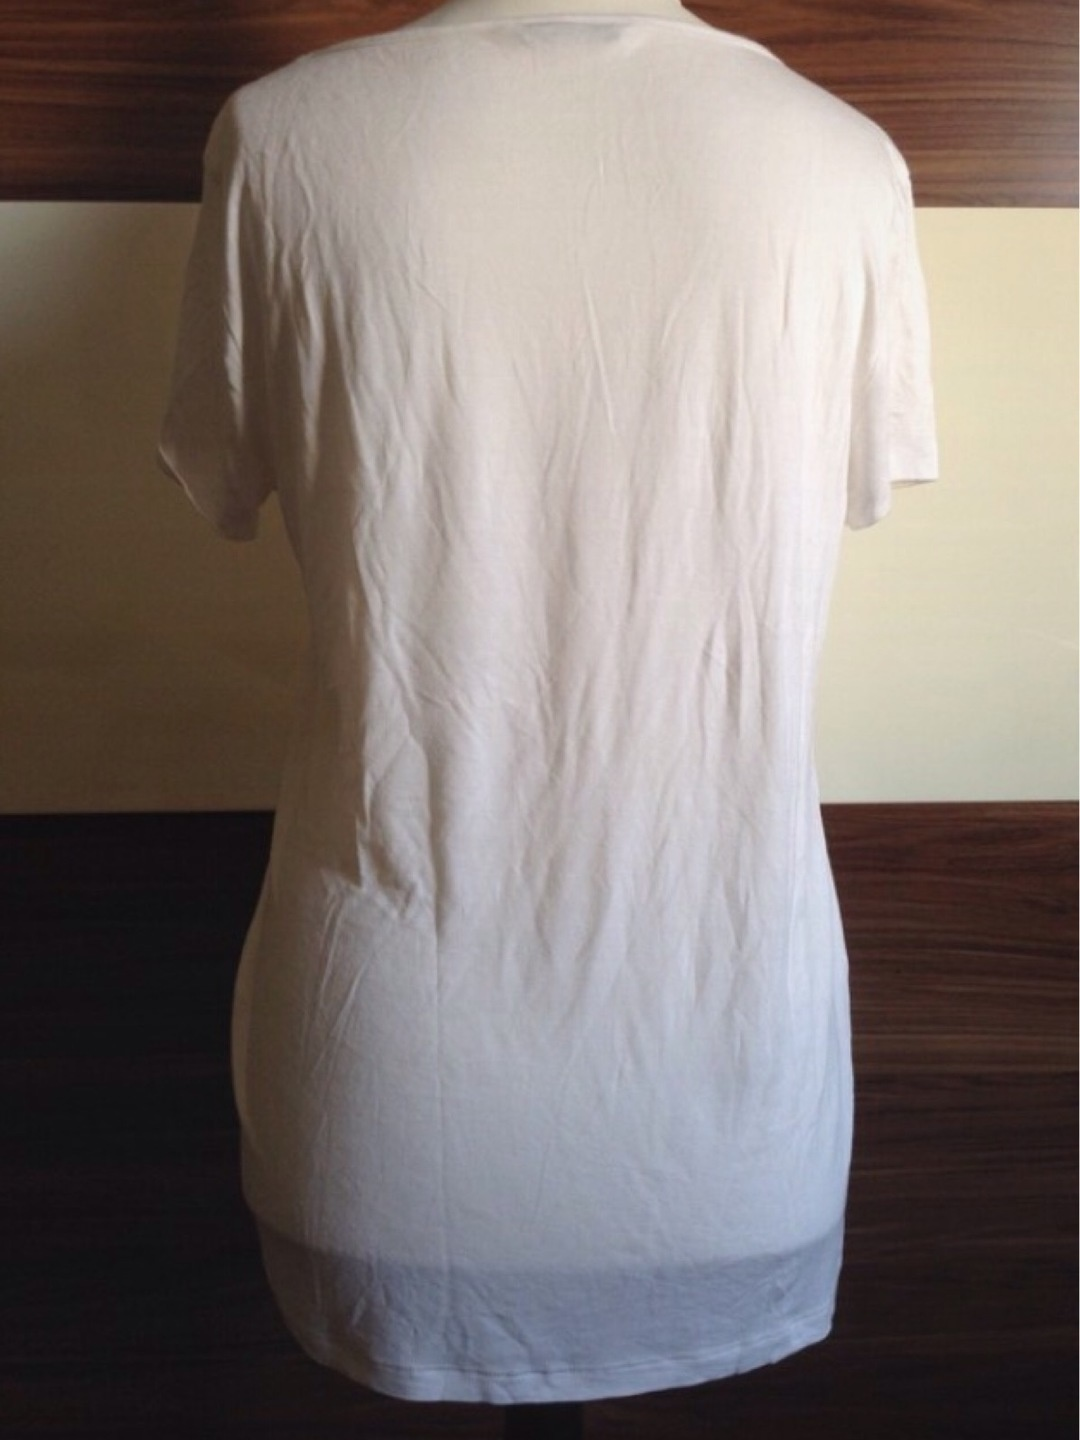 Damers toppe og t-shirts - ONLY photo 3